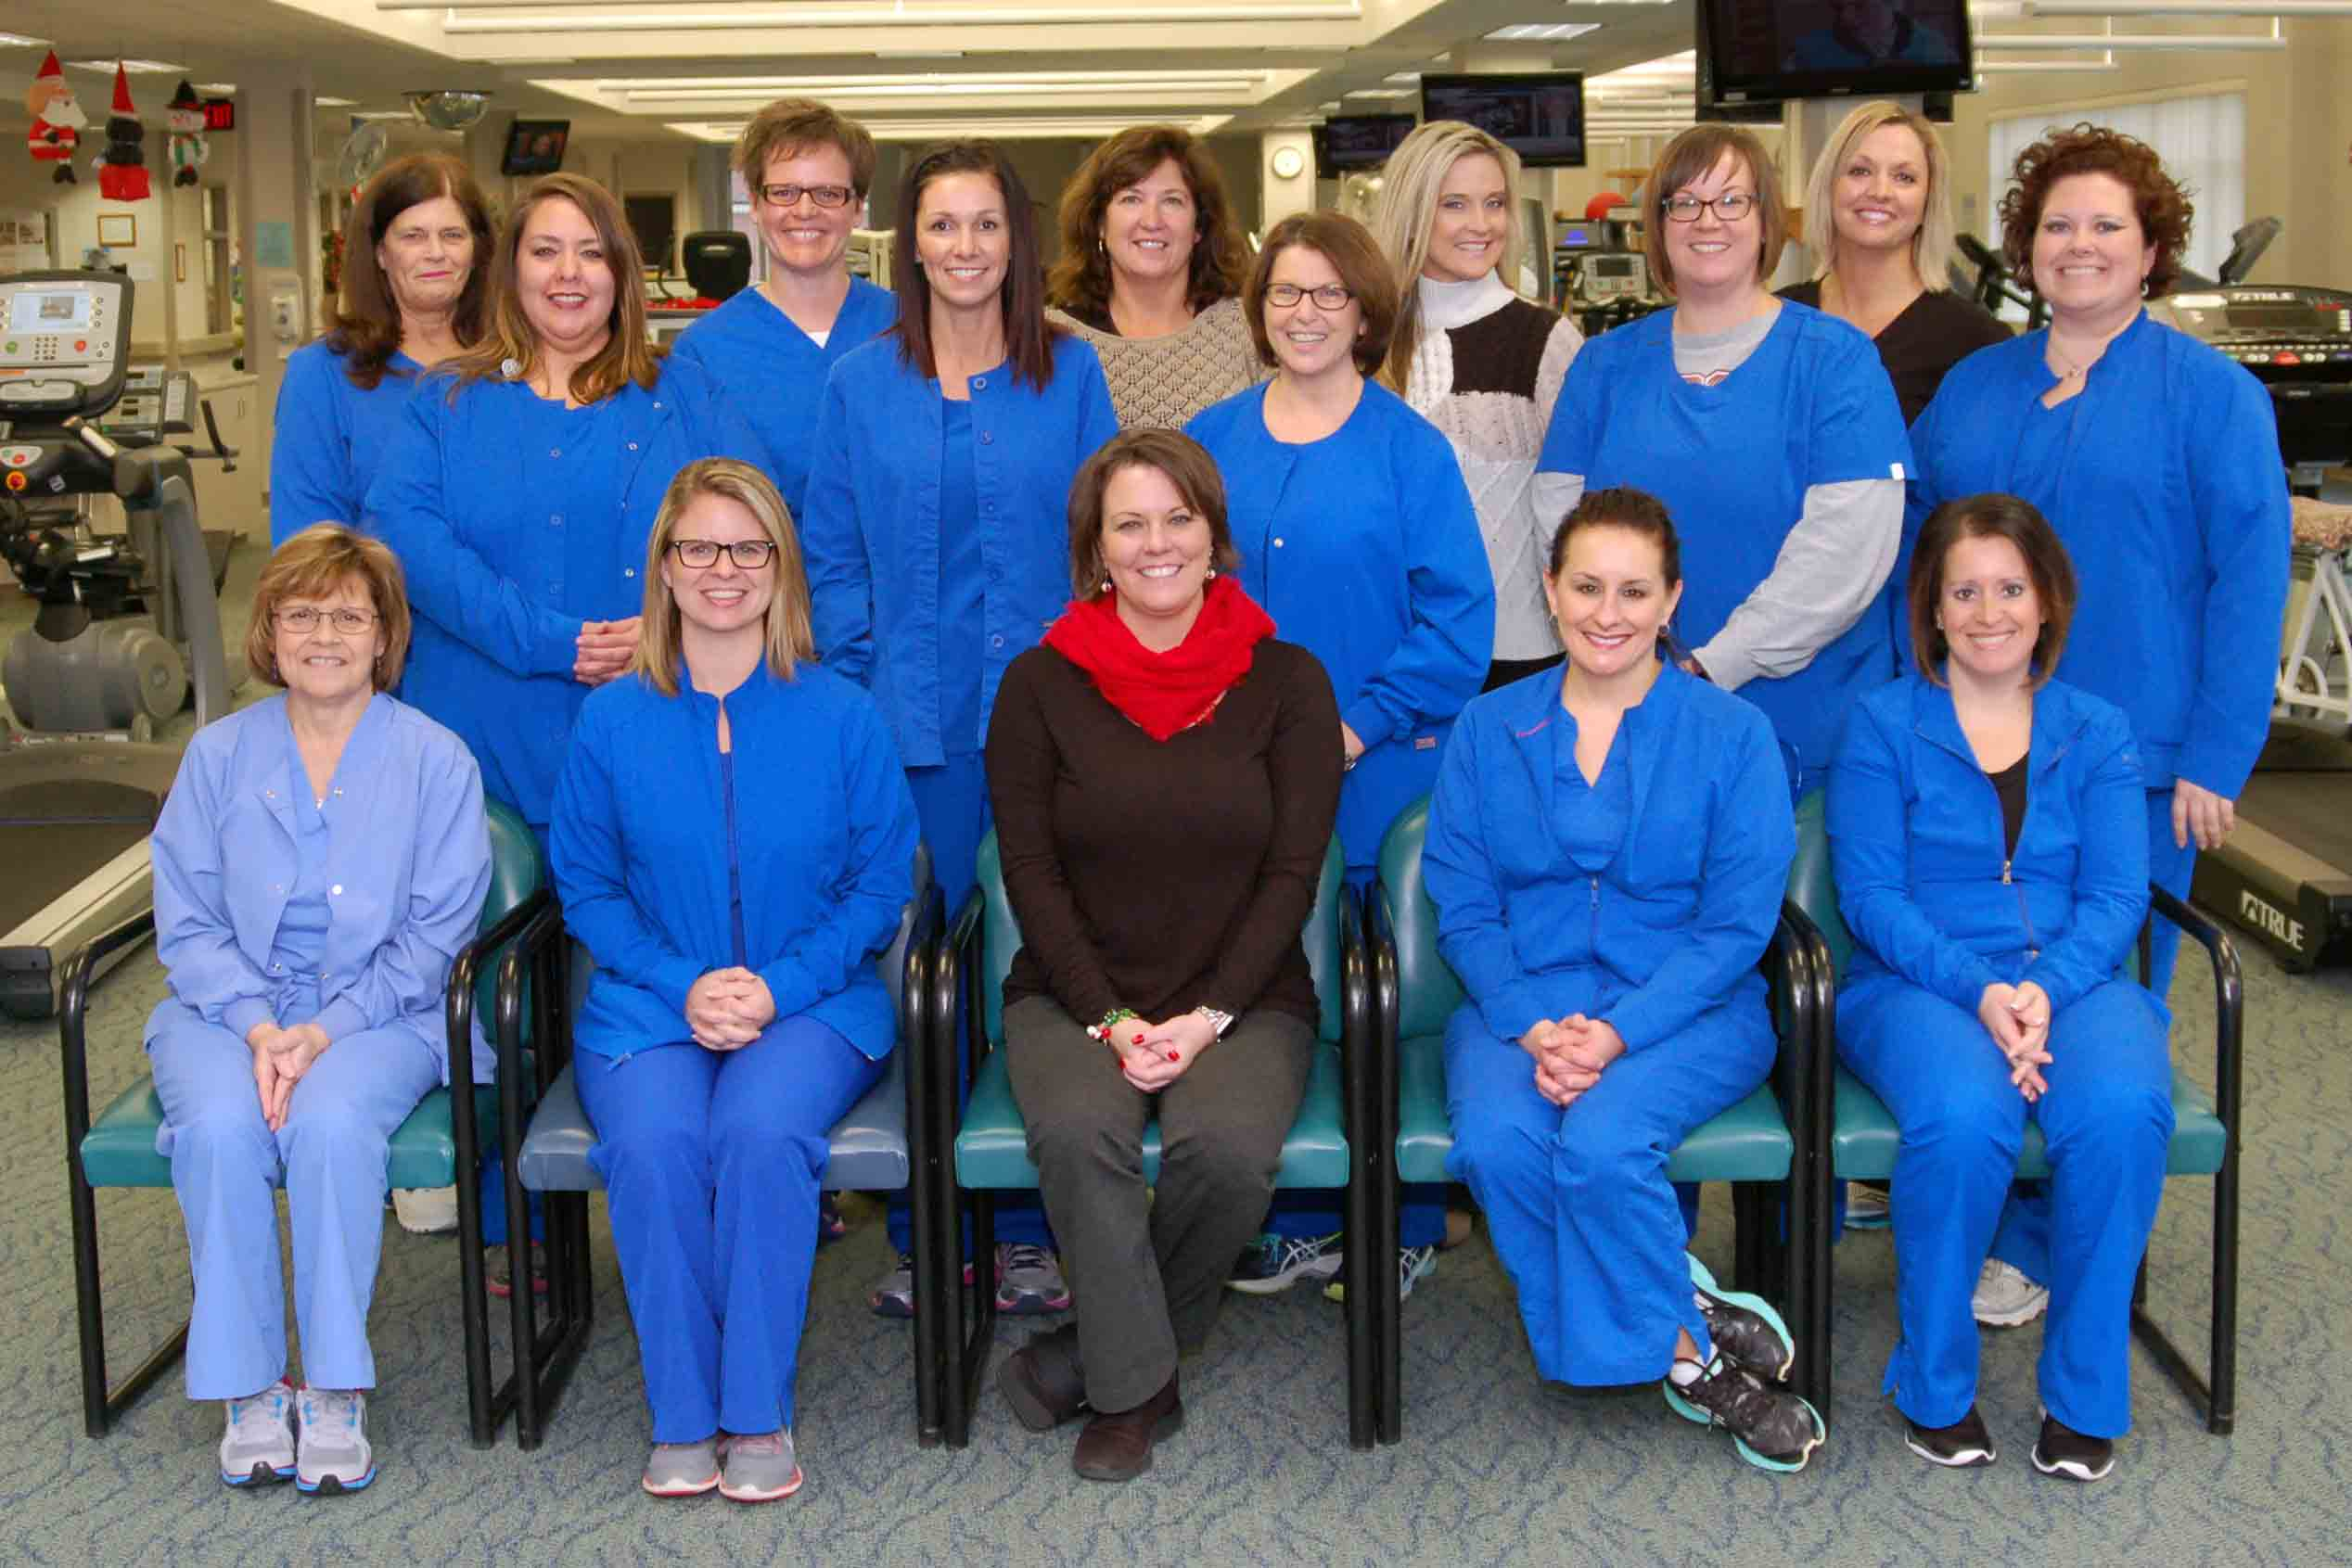 Pictured from the Cardiopulmonary Rehab team are (front row) Vickie Barickman, PAC; Brianne Long, R.N.; Jennifer Newman, R.N., director of Cardiopulmonary Rehabilitation; Monica Lindner, R.N.; Lauren Basler, R.N.; (back row) Jeanne Dickemann, R.N.; Robyn Adams, R.N.; Andrea Heimgartner, R.N.; Jessica Johnson, R.N.; Anita Marlay, R.D.; Belinda Brown, R.N.; Stephanie Ezard, R.N.; Shannon Geasley, R.N.; Jody Corpe, E.P.; and Lyndsay Funke, R.N.